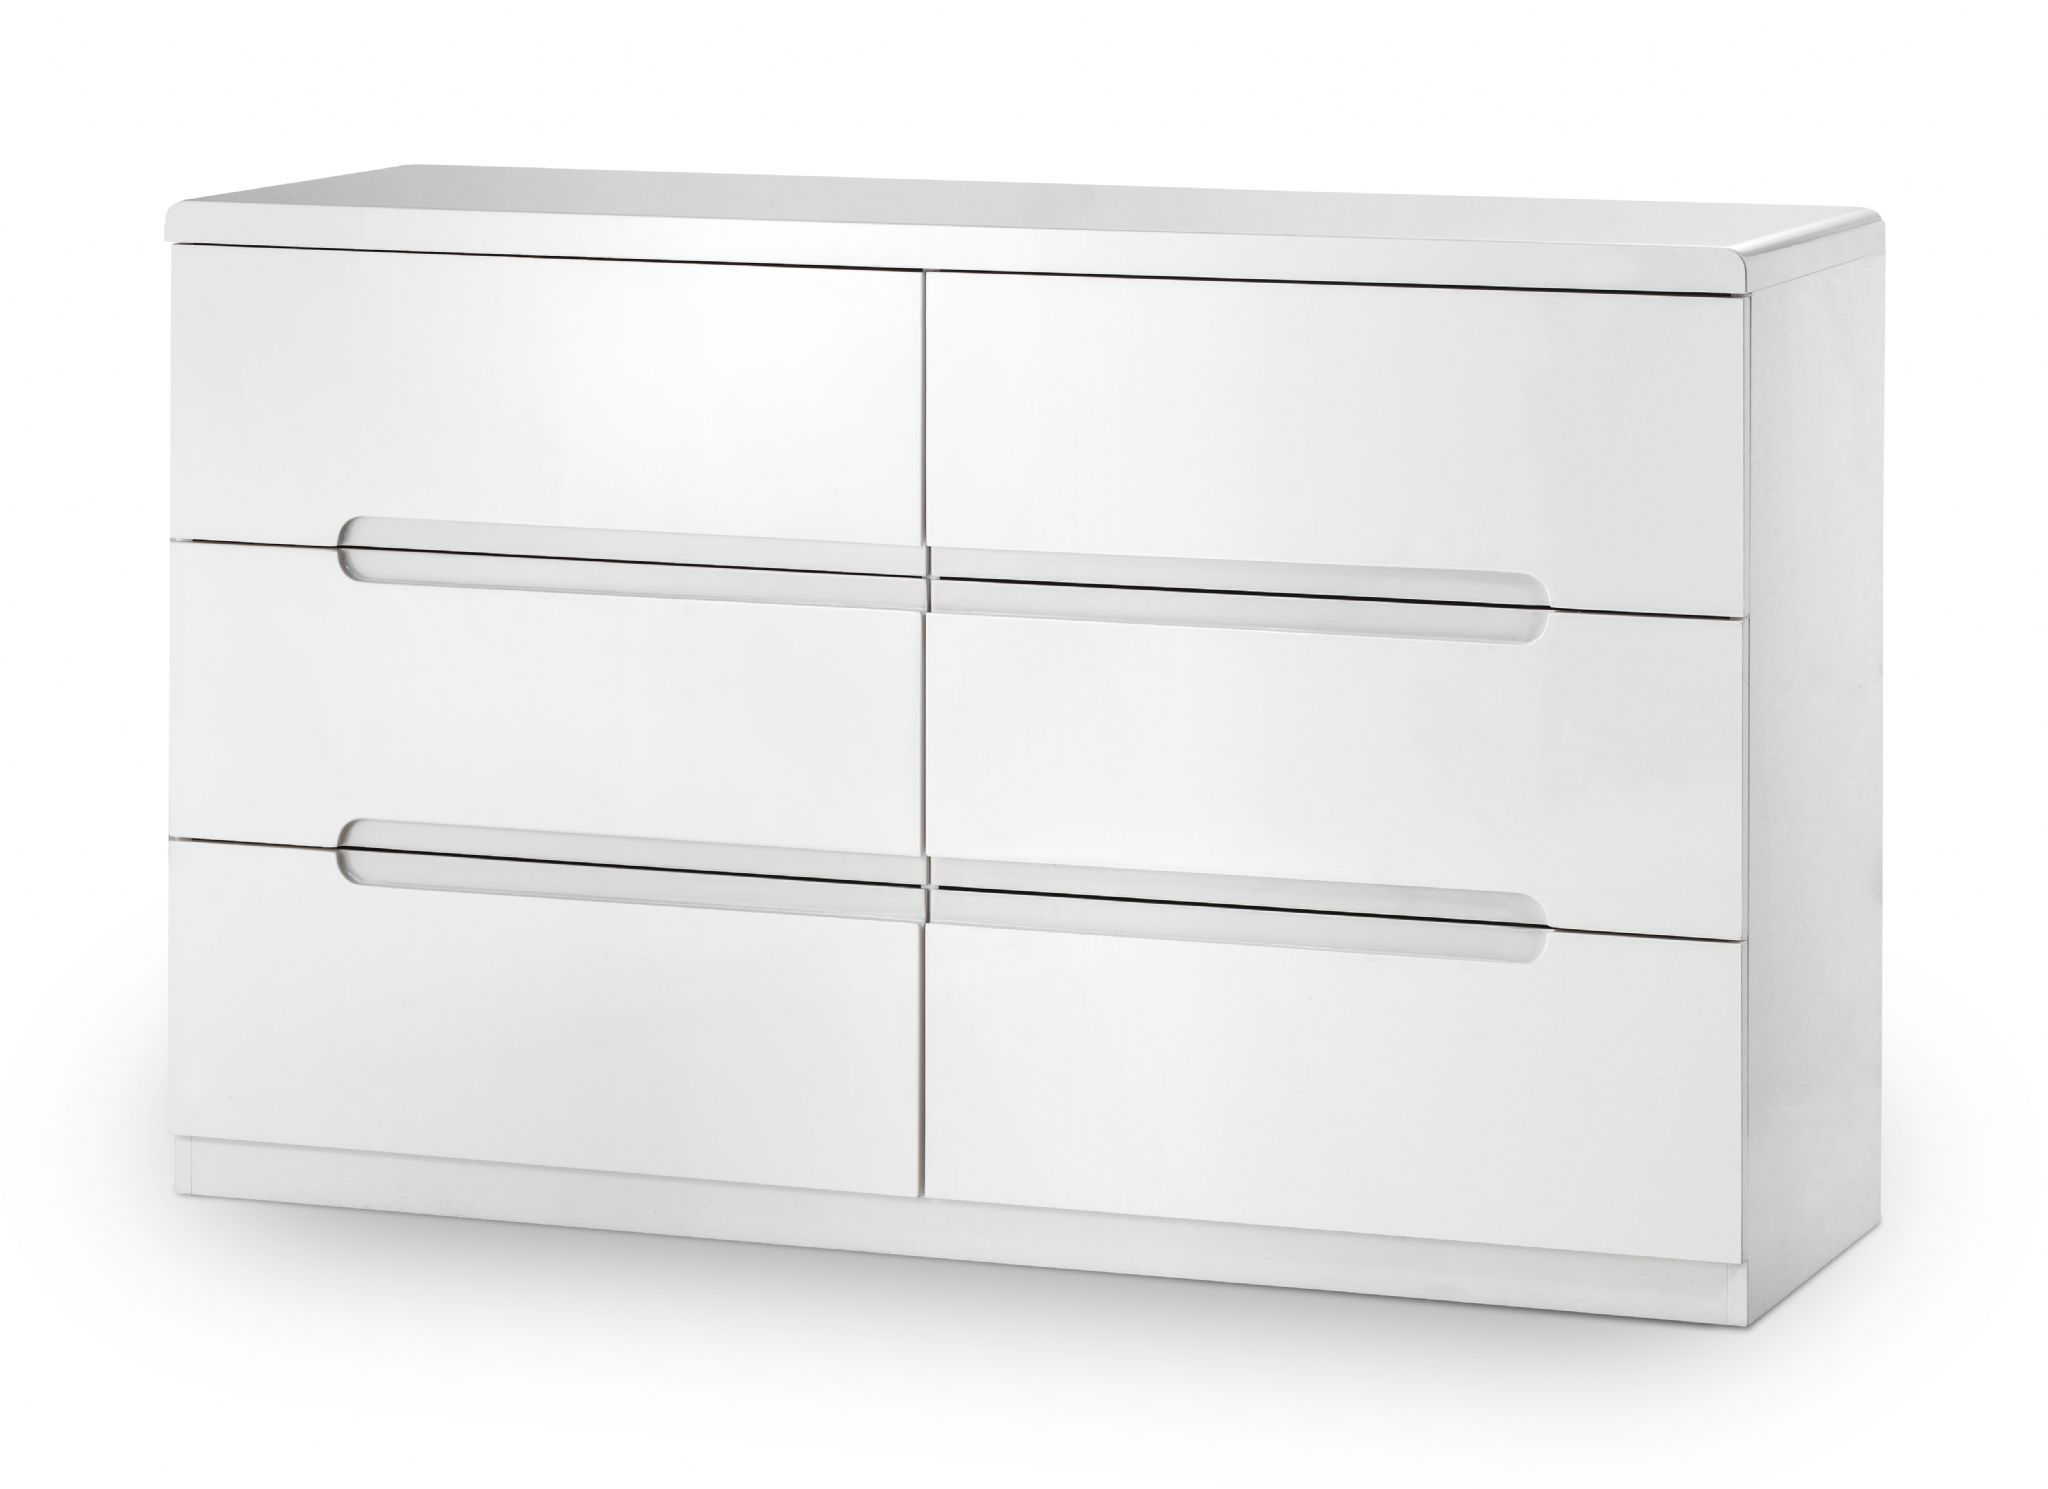 White Gloss Drawers Alzira White High Gloss Lacquer 6 Drawer Wide Chest Jb312